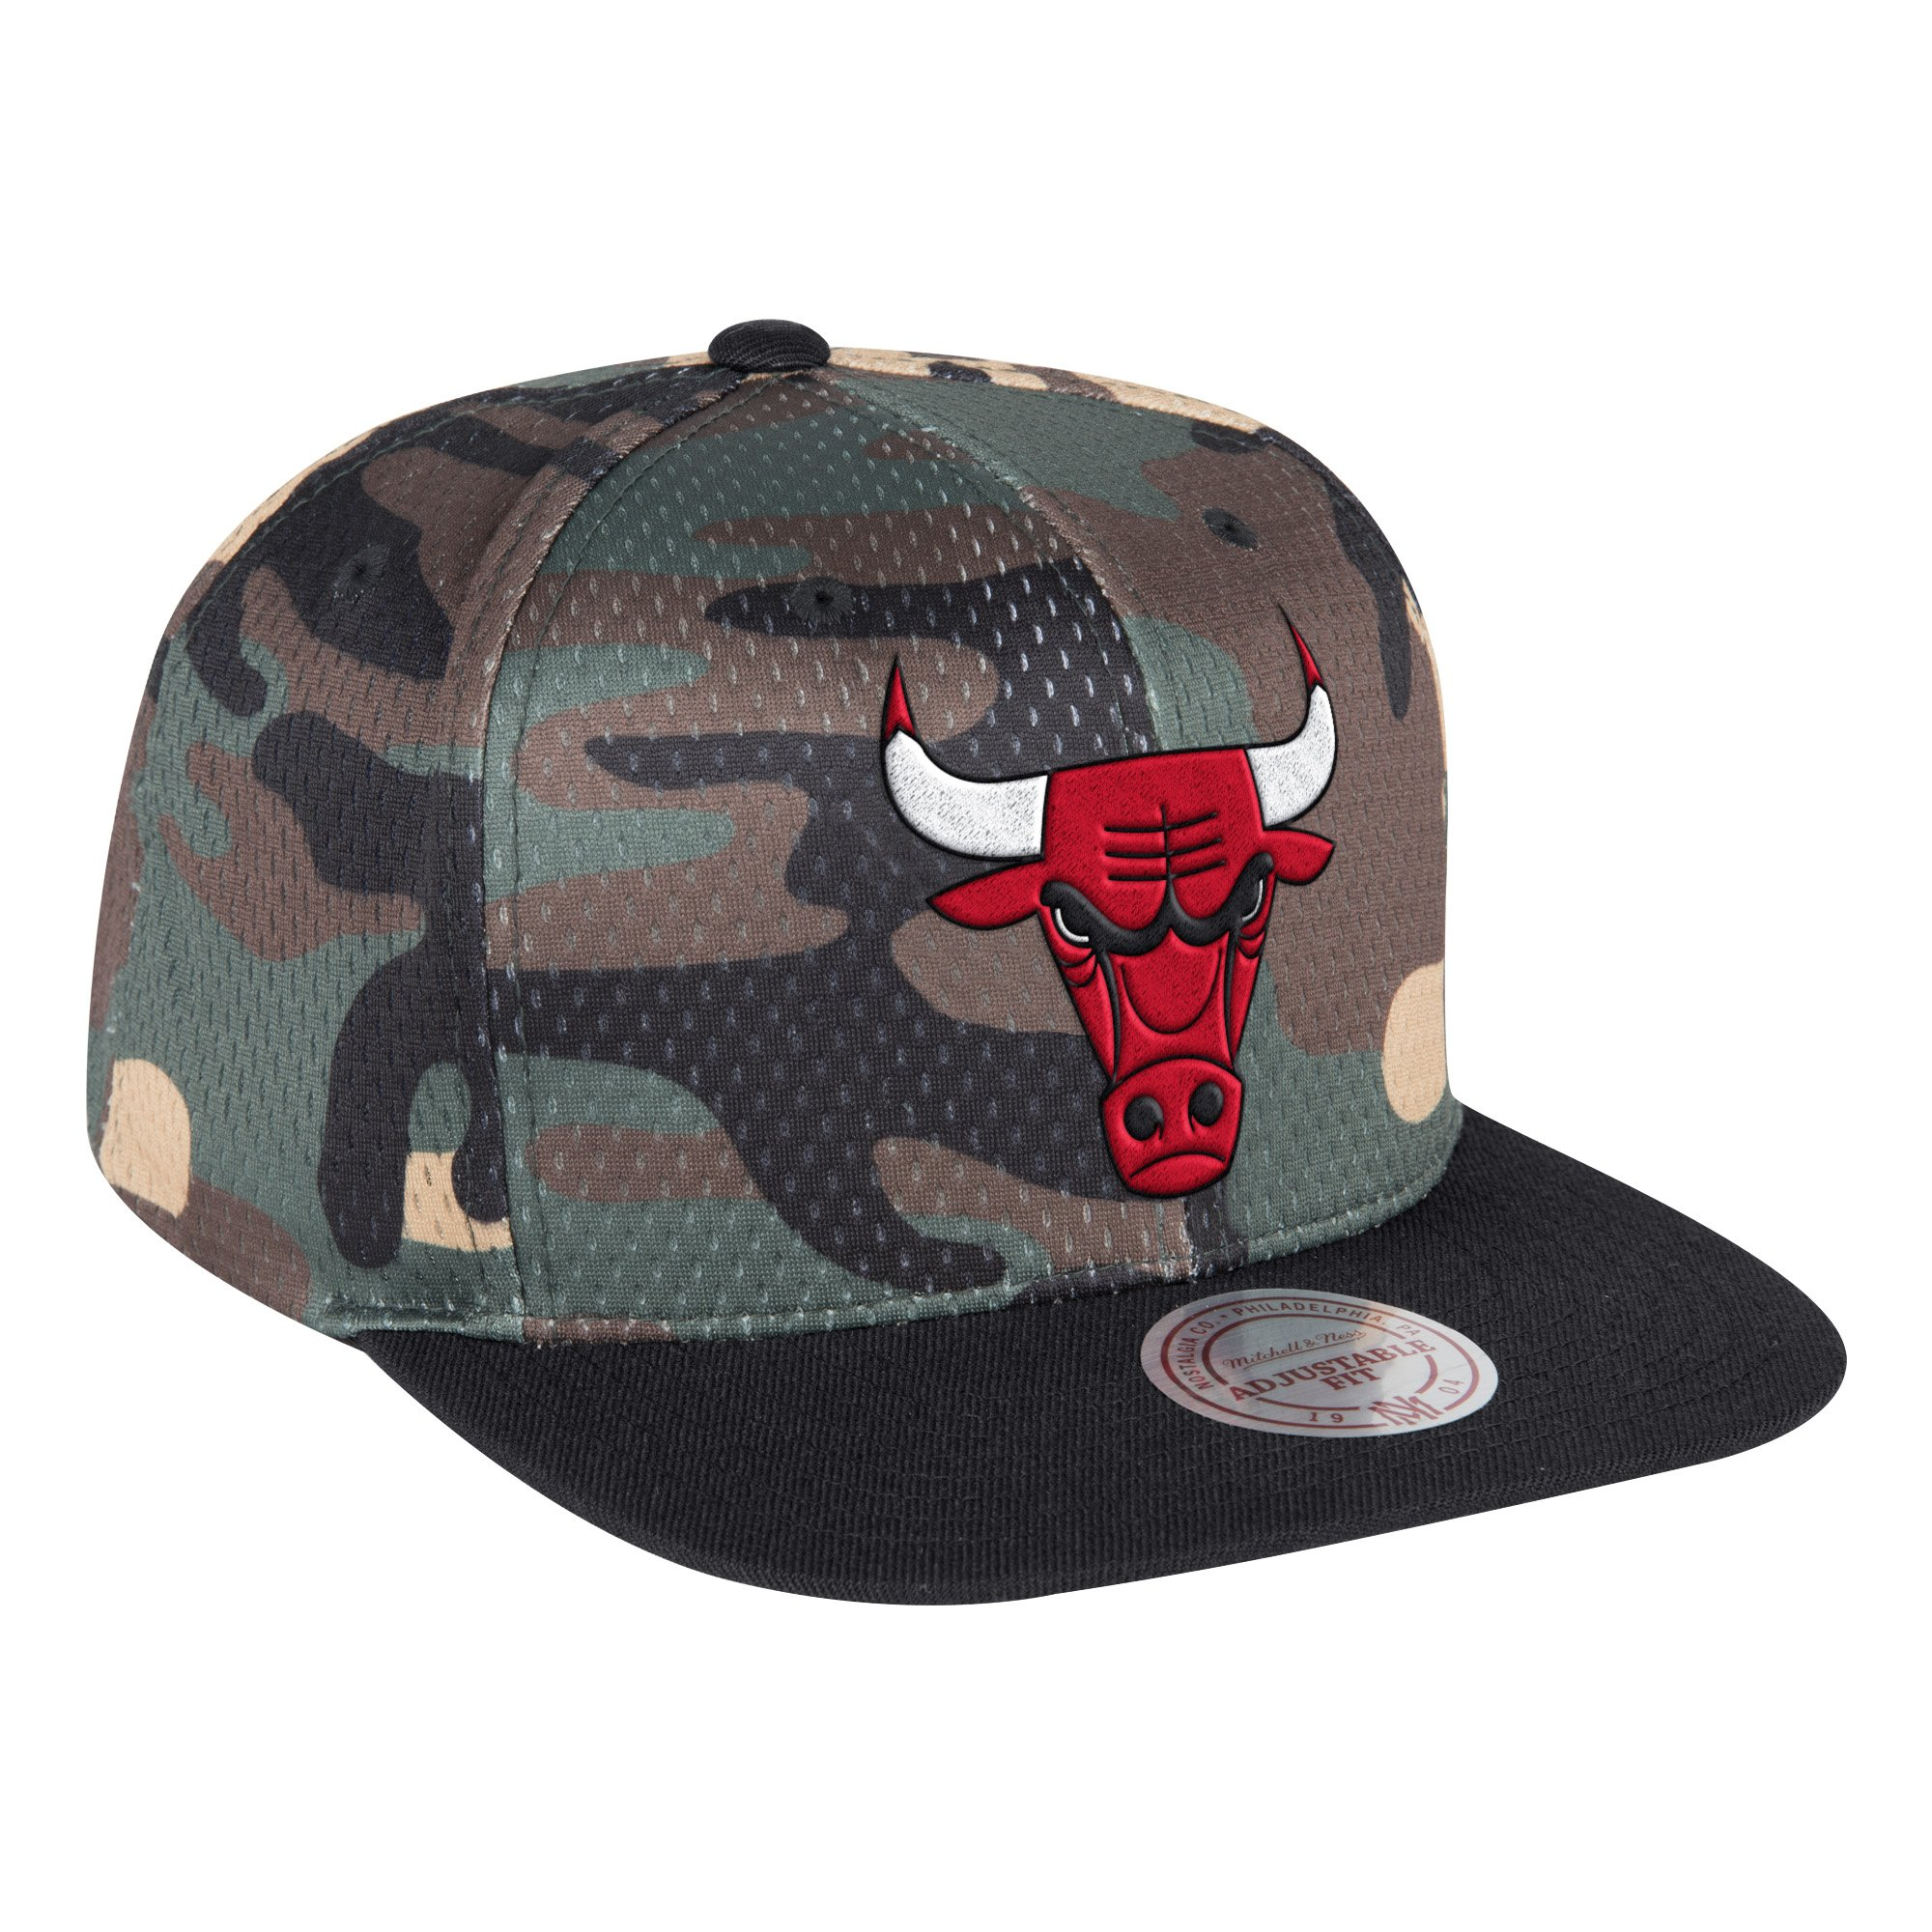 NBA Chicago Bulls Mitchell & Ness Camo Cover Snapback 9FIFTY - Camo